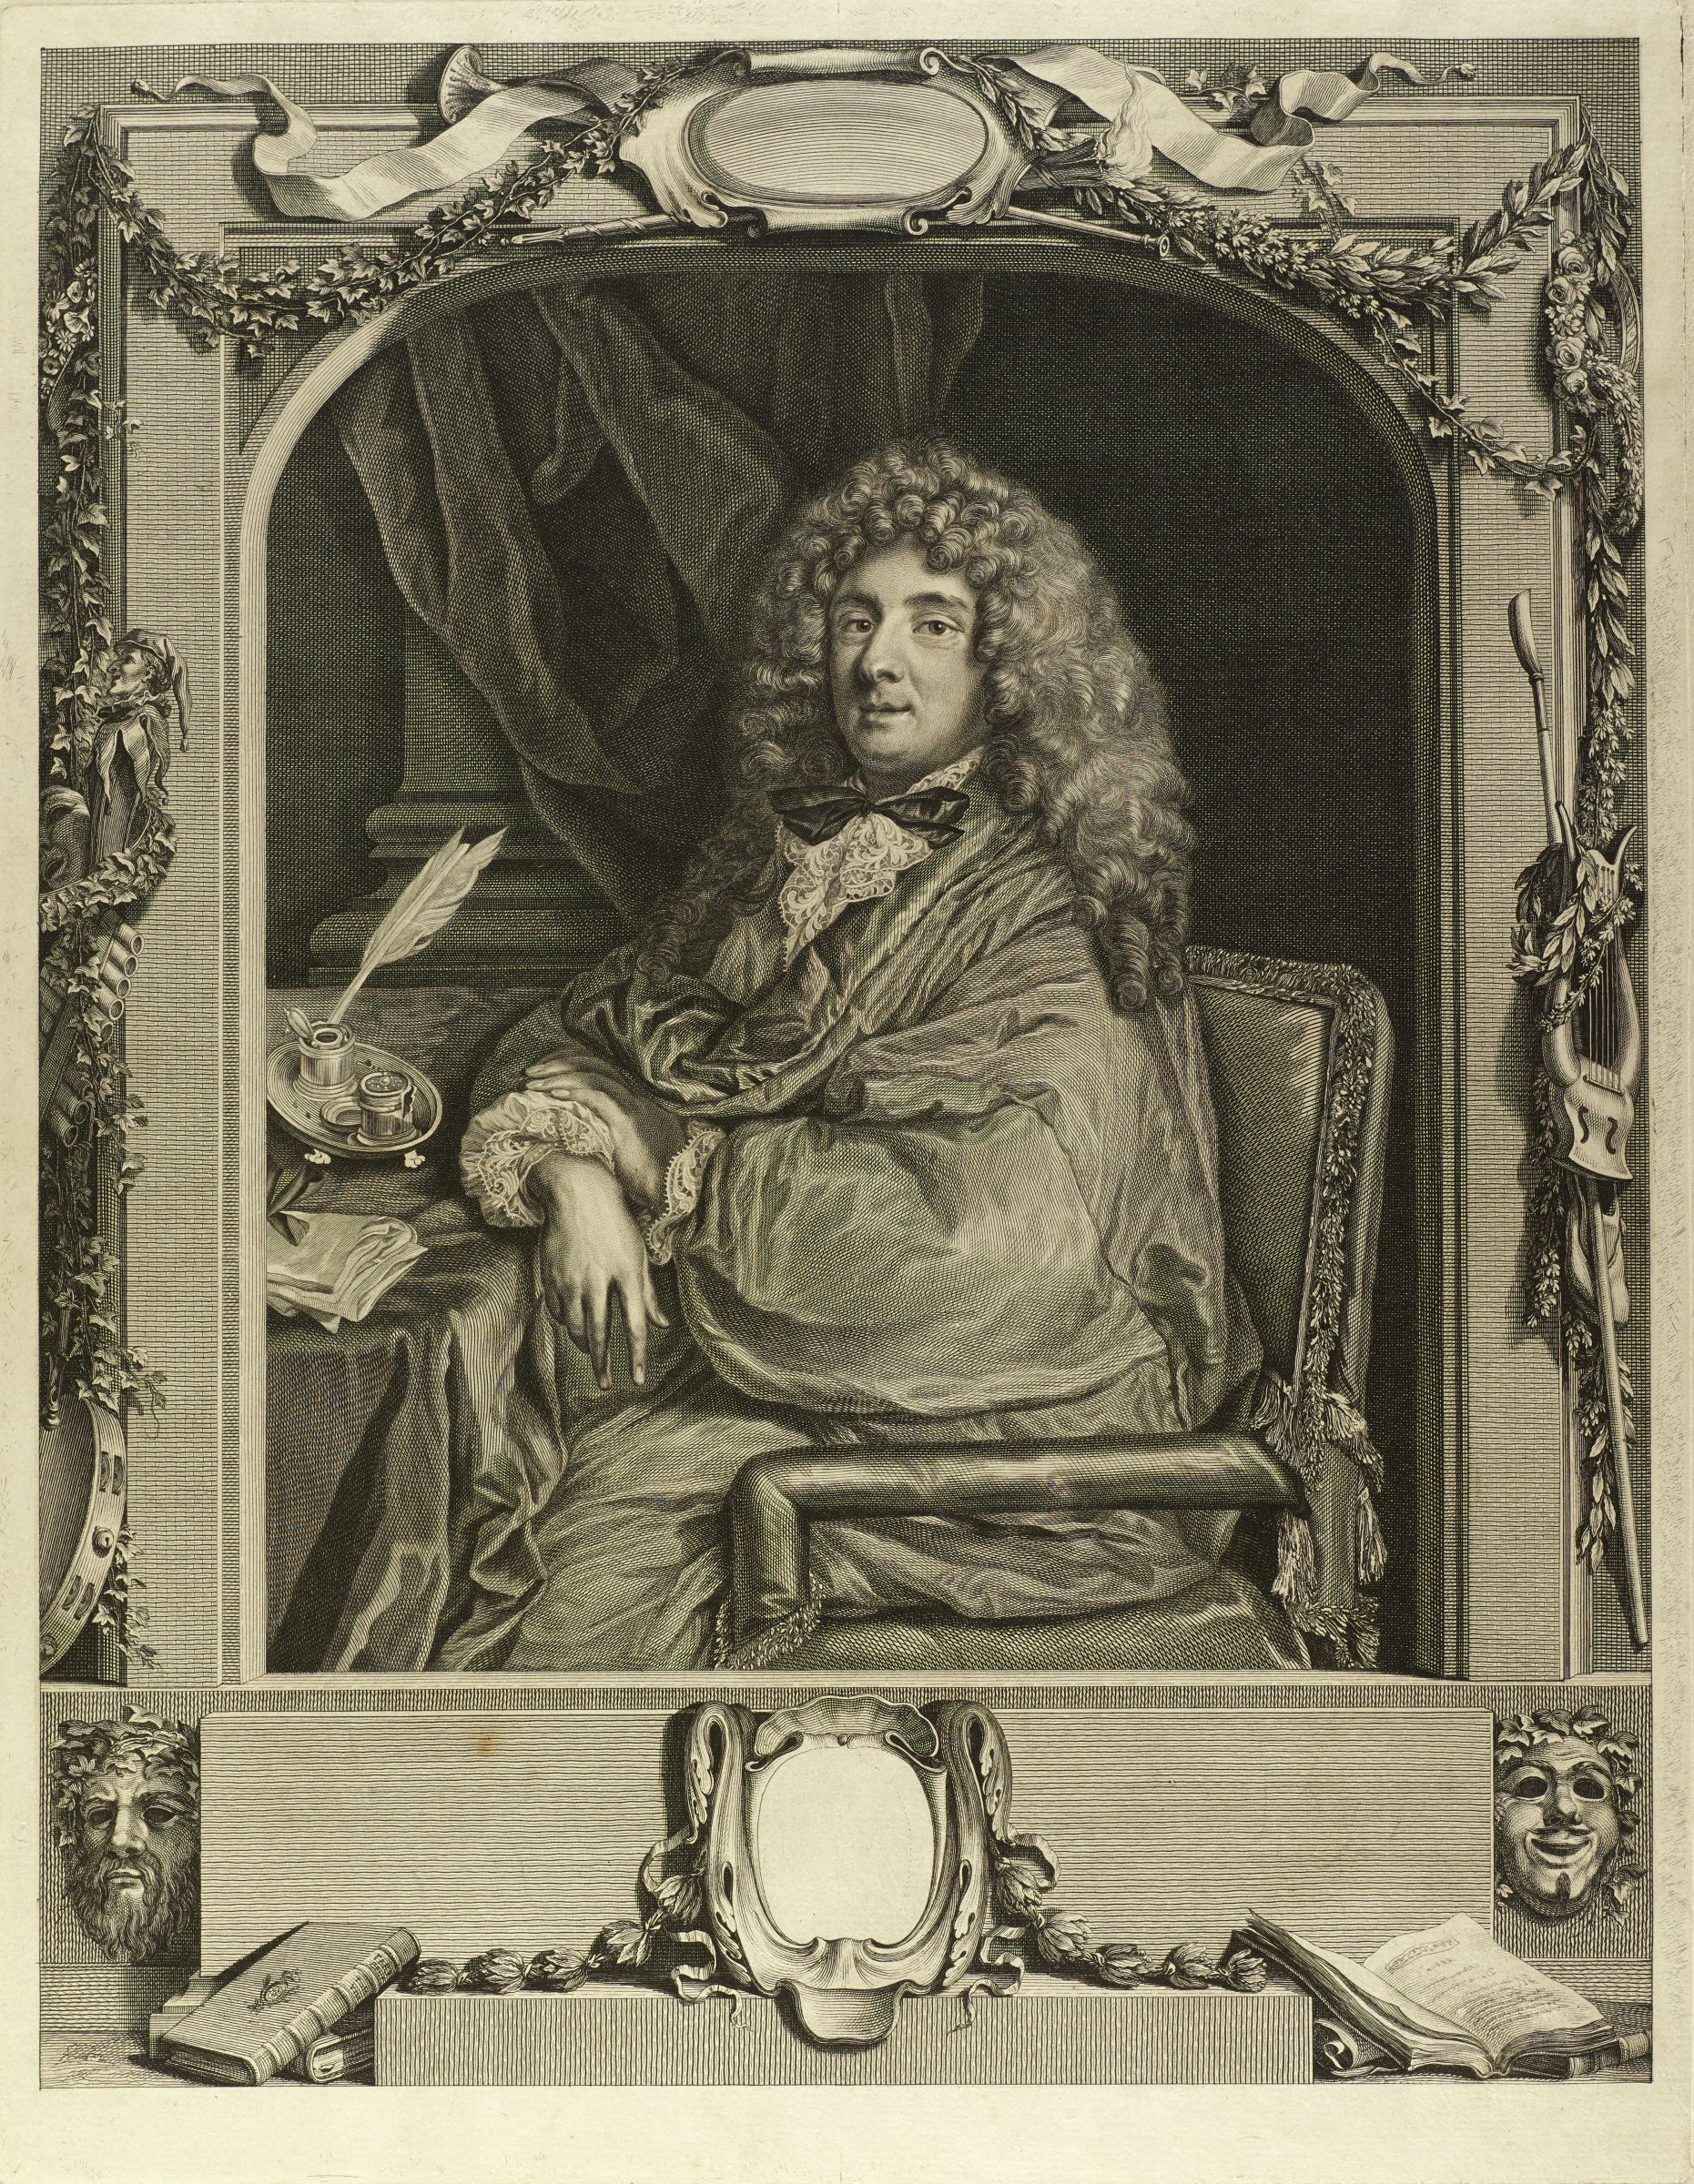 Portrait of a man with long curly hair sitting in an ornate chair. He rests his right arm on a table. A swaged curtain hangs behind him. This portrait is surrounded in the borders by instruments, books, masks, and foliage.